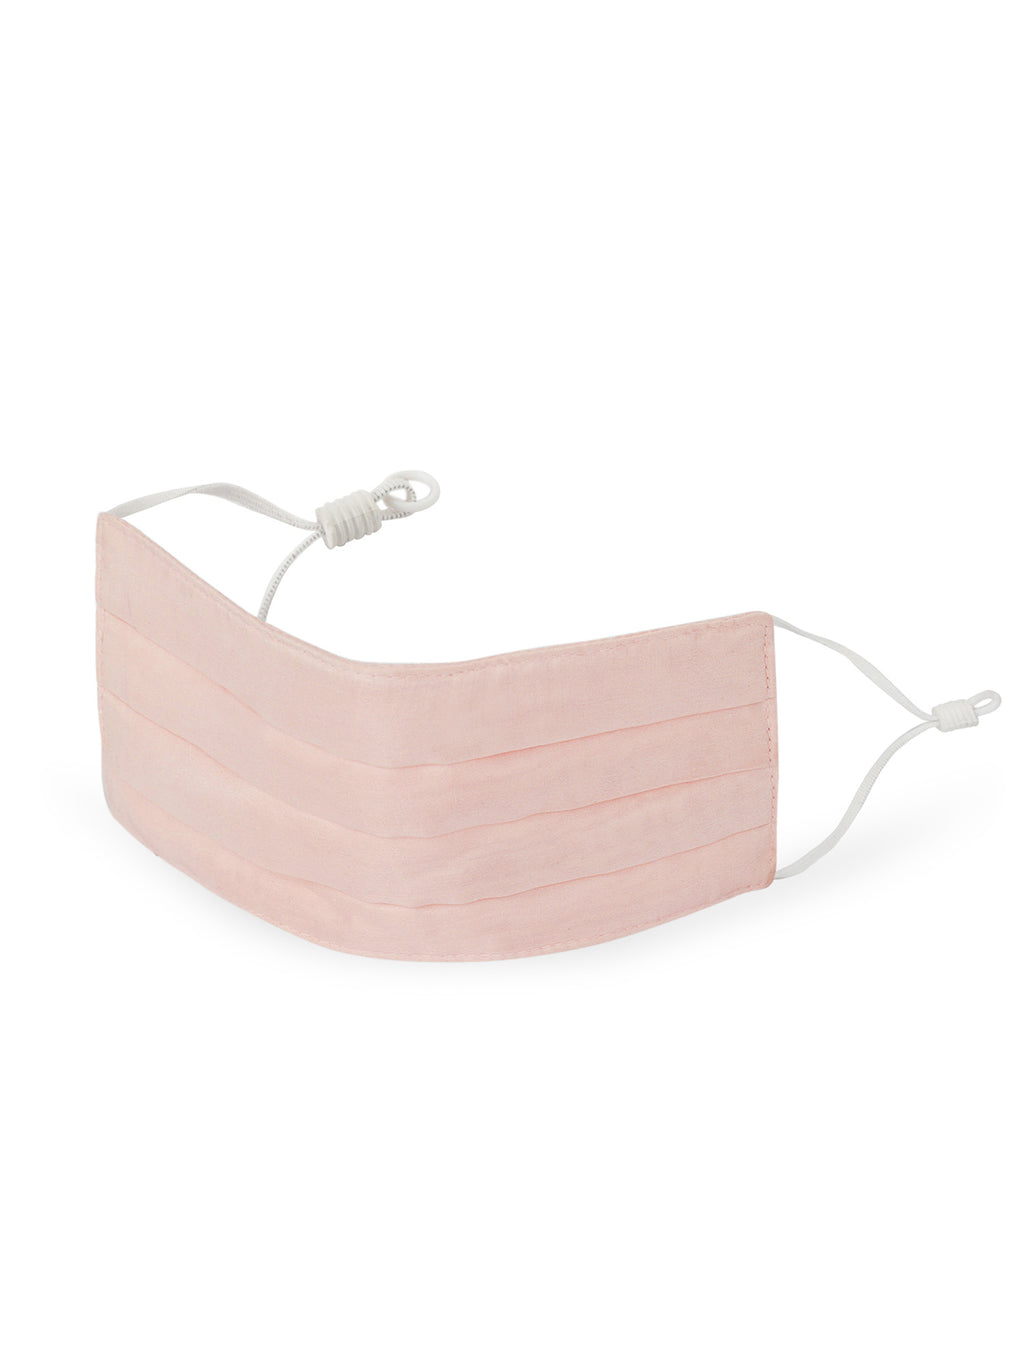 Reusable Pleated Silk Face Mask- Blush